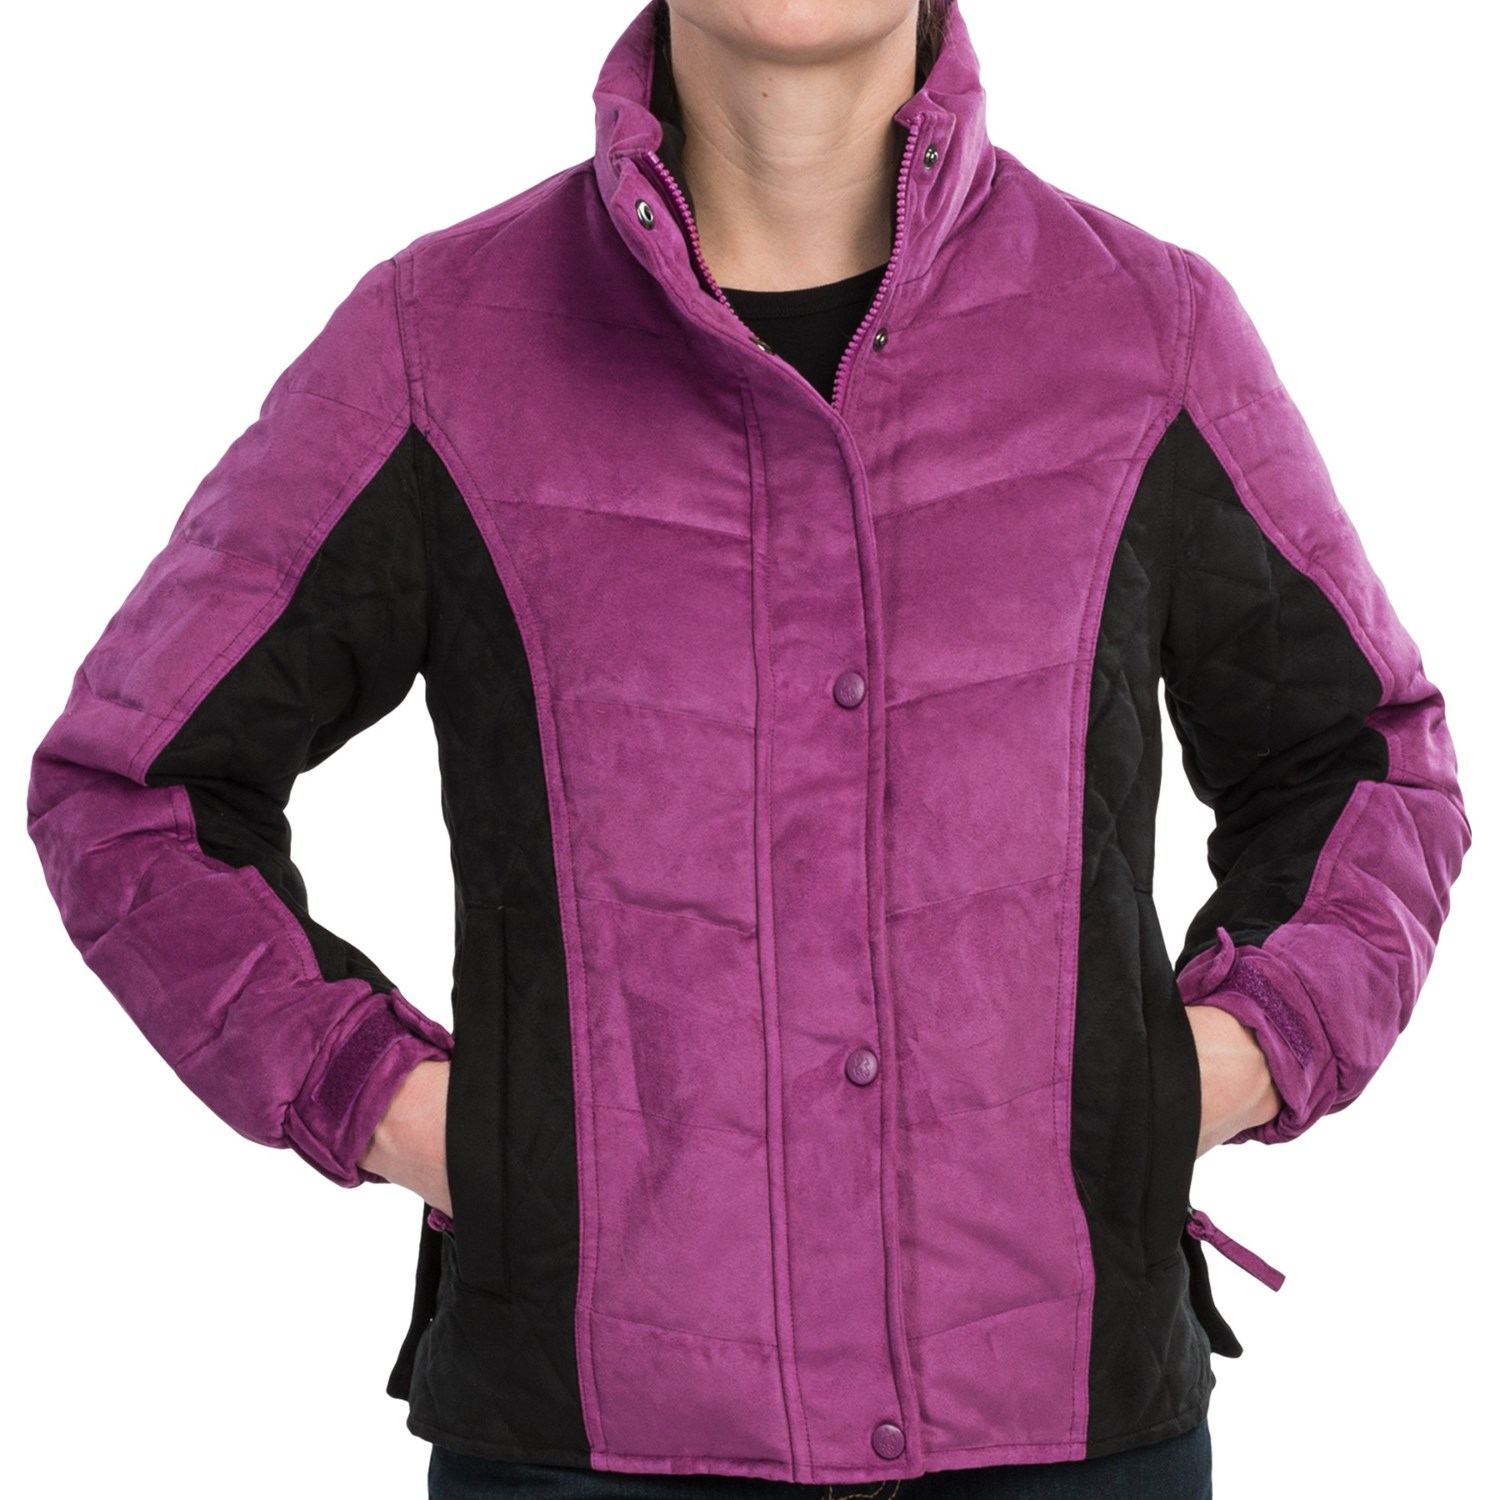 Submit Your Own Image · Outback Trading Burlington Down Jacket